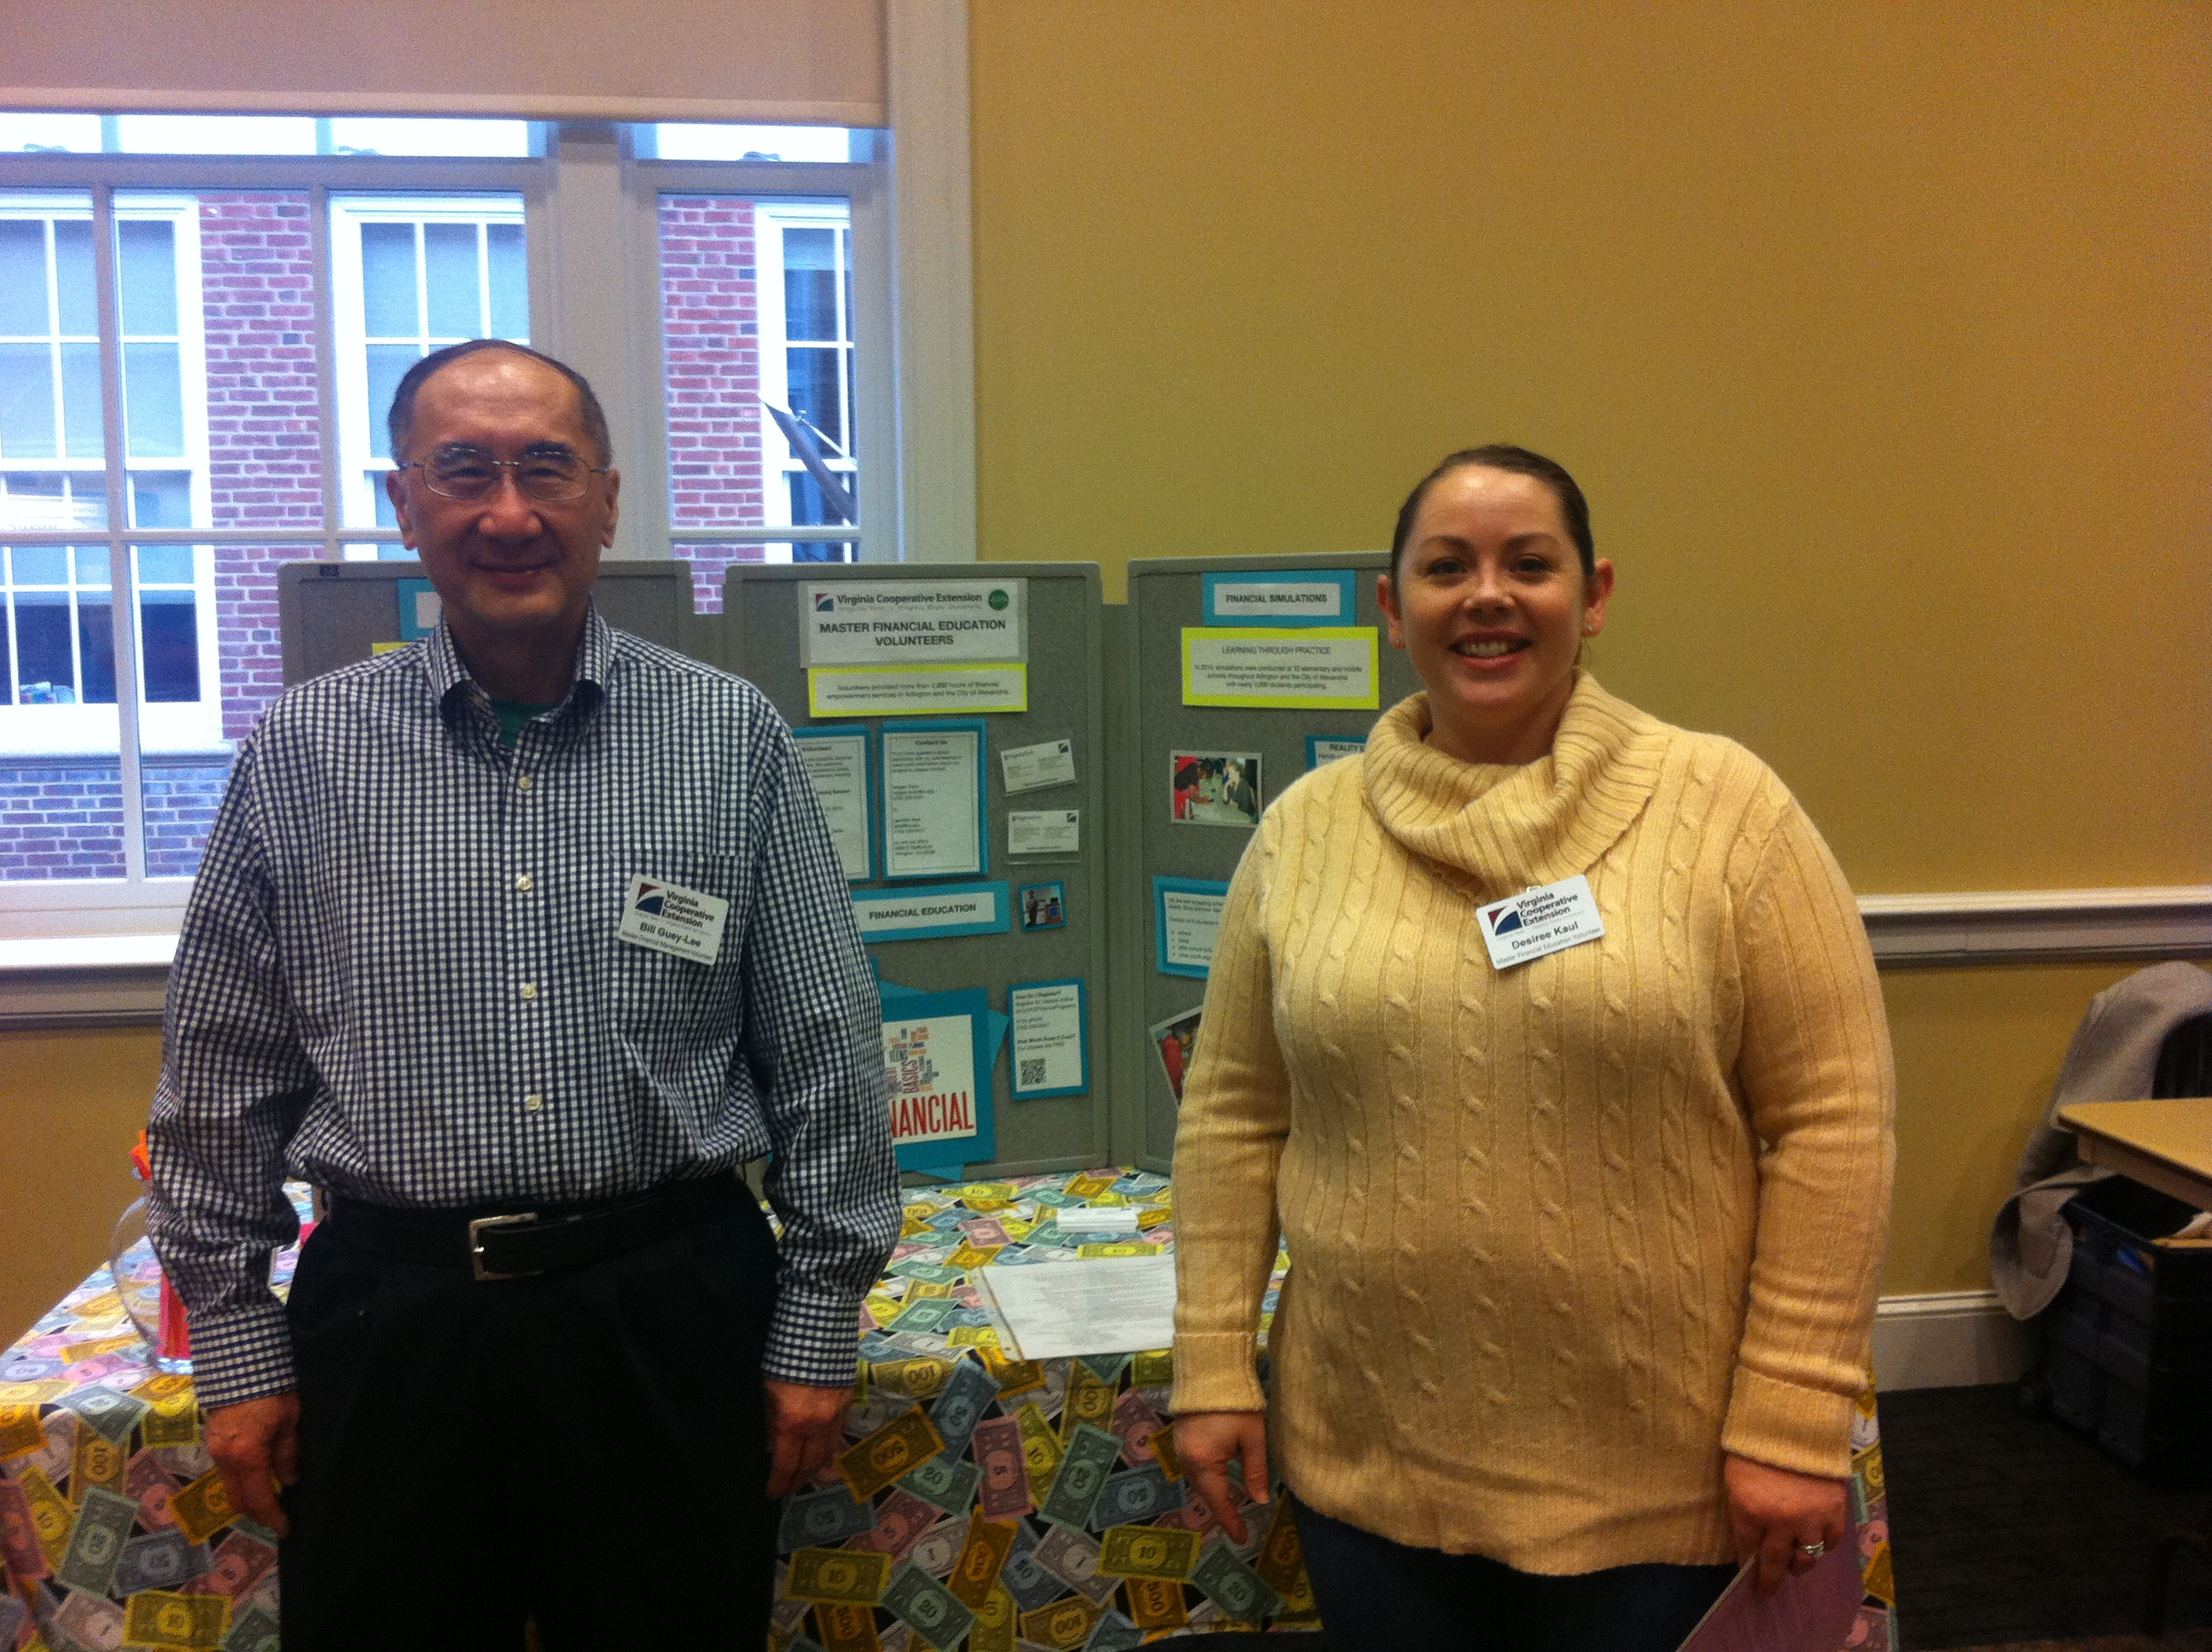 Volunteers Bill Guey-Lee and Desiree Kaul manage the Master Financial Education display.